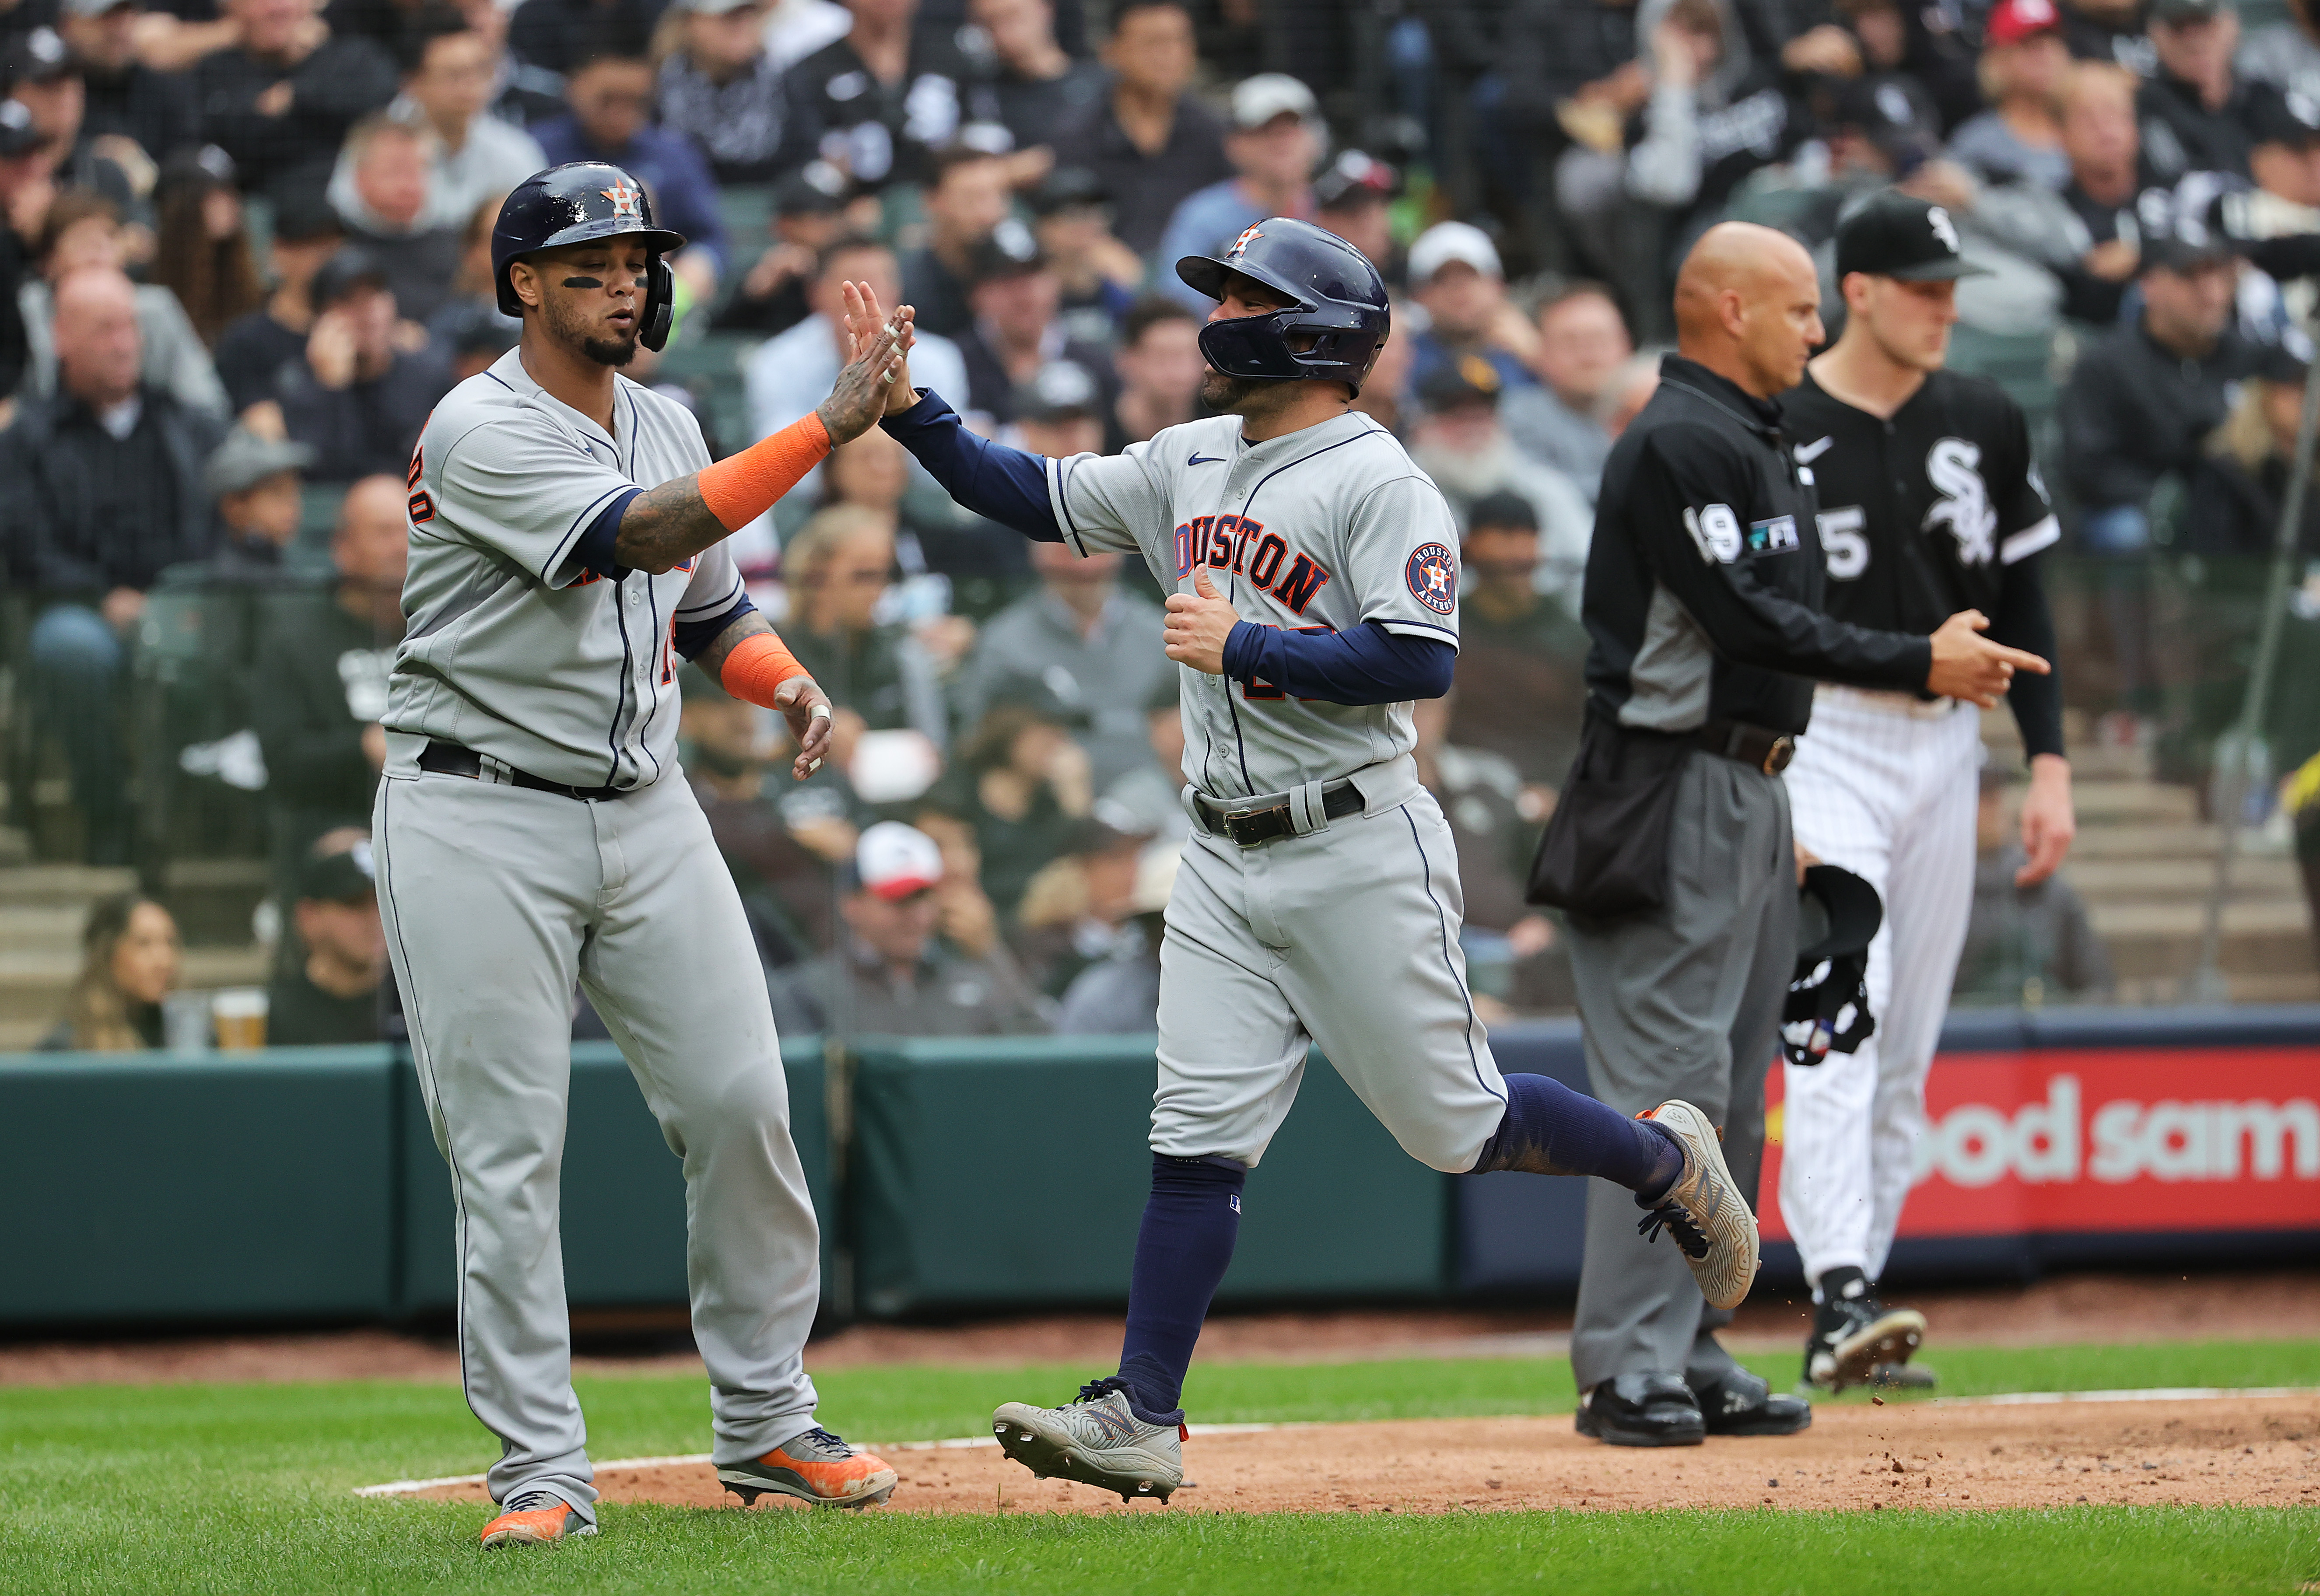 Jose Altuve #27 and Martin Maldonado #15 of the Houston Astros congratulate each other after scoring on a 2- RBI double by Alex Bregman #2 during the 4th inning of Game 4 of the American League Division Series against the Chicago White Sox at Guaranteed Rate Field on October 12, 2021 in Chicago, Illinois.